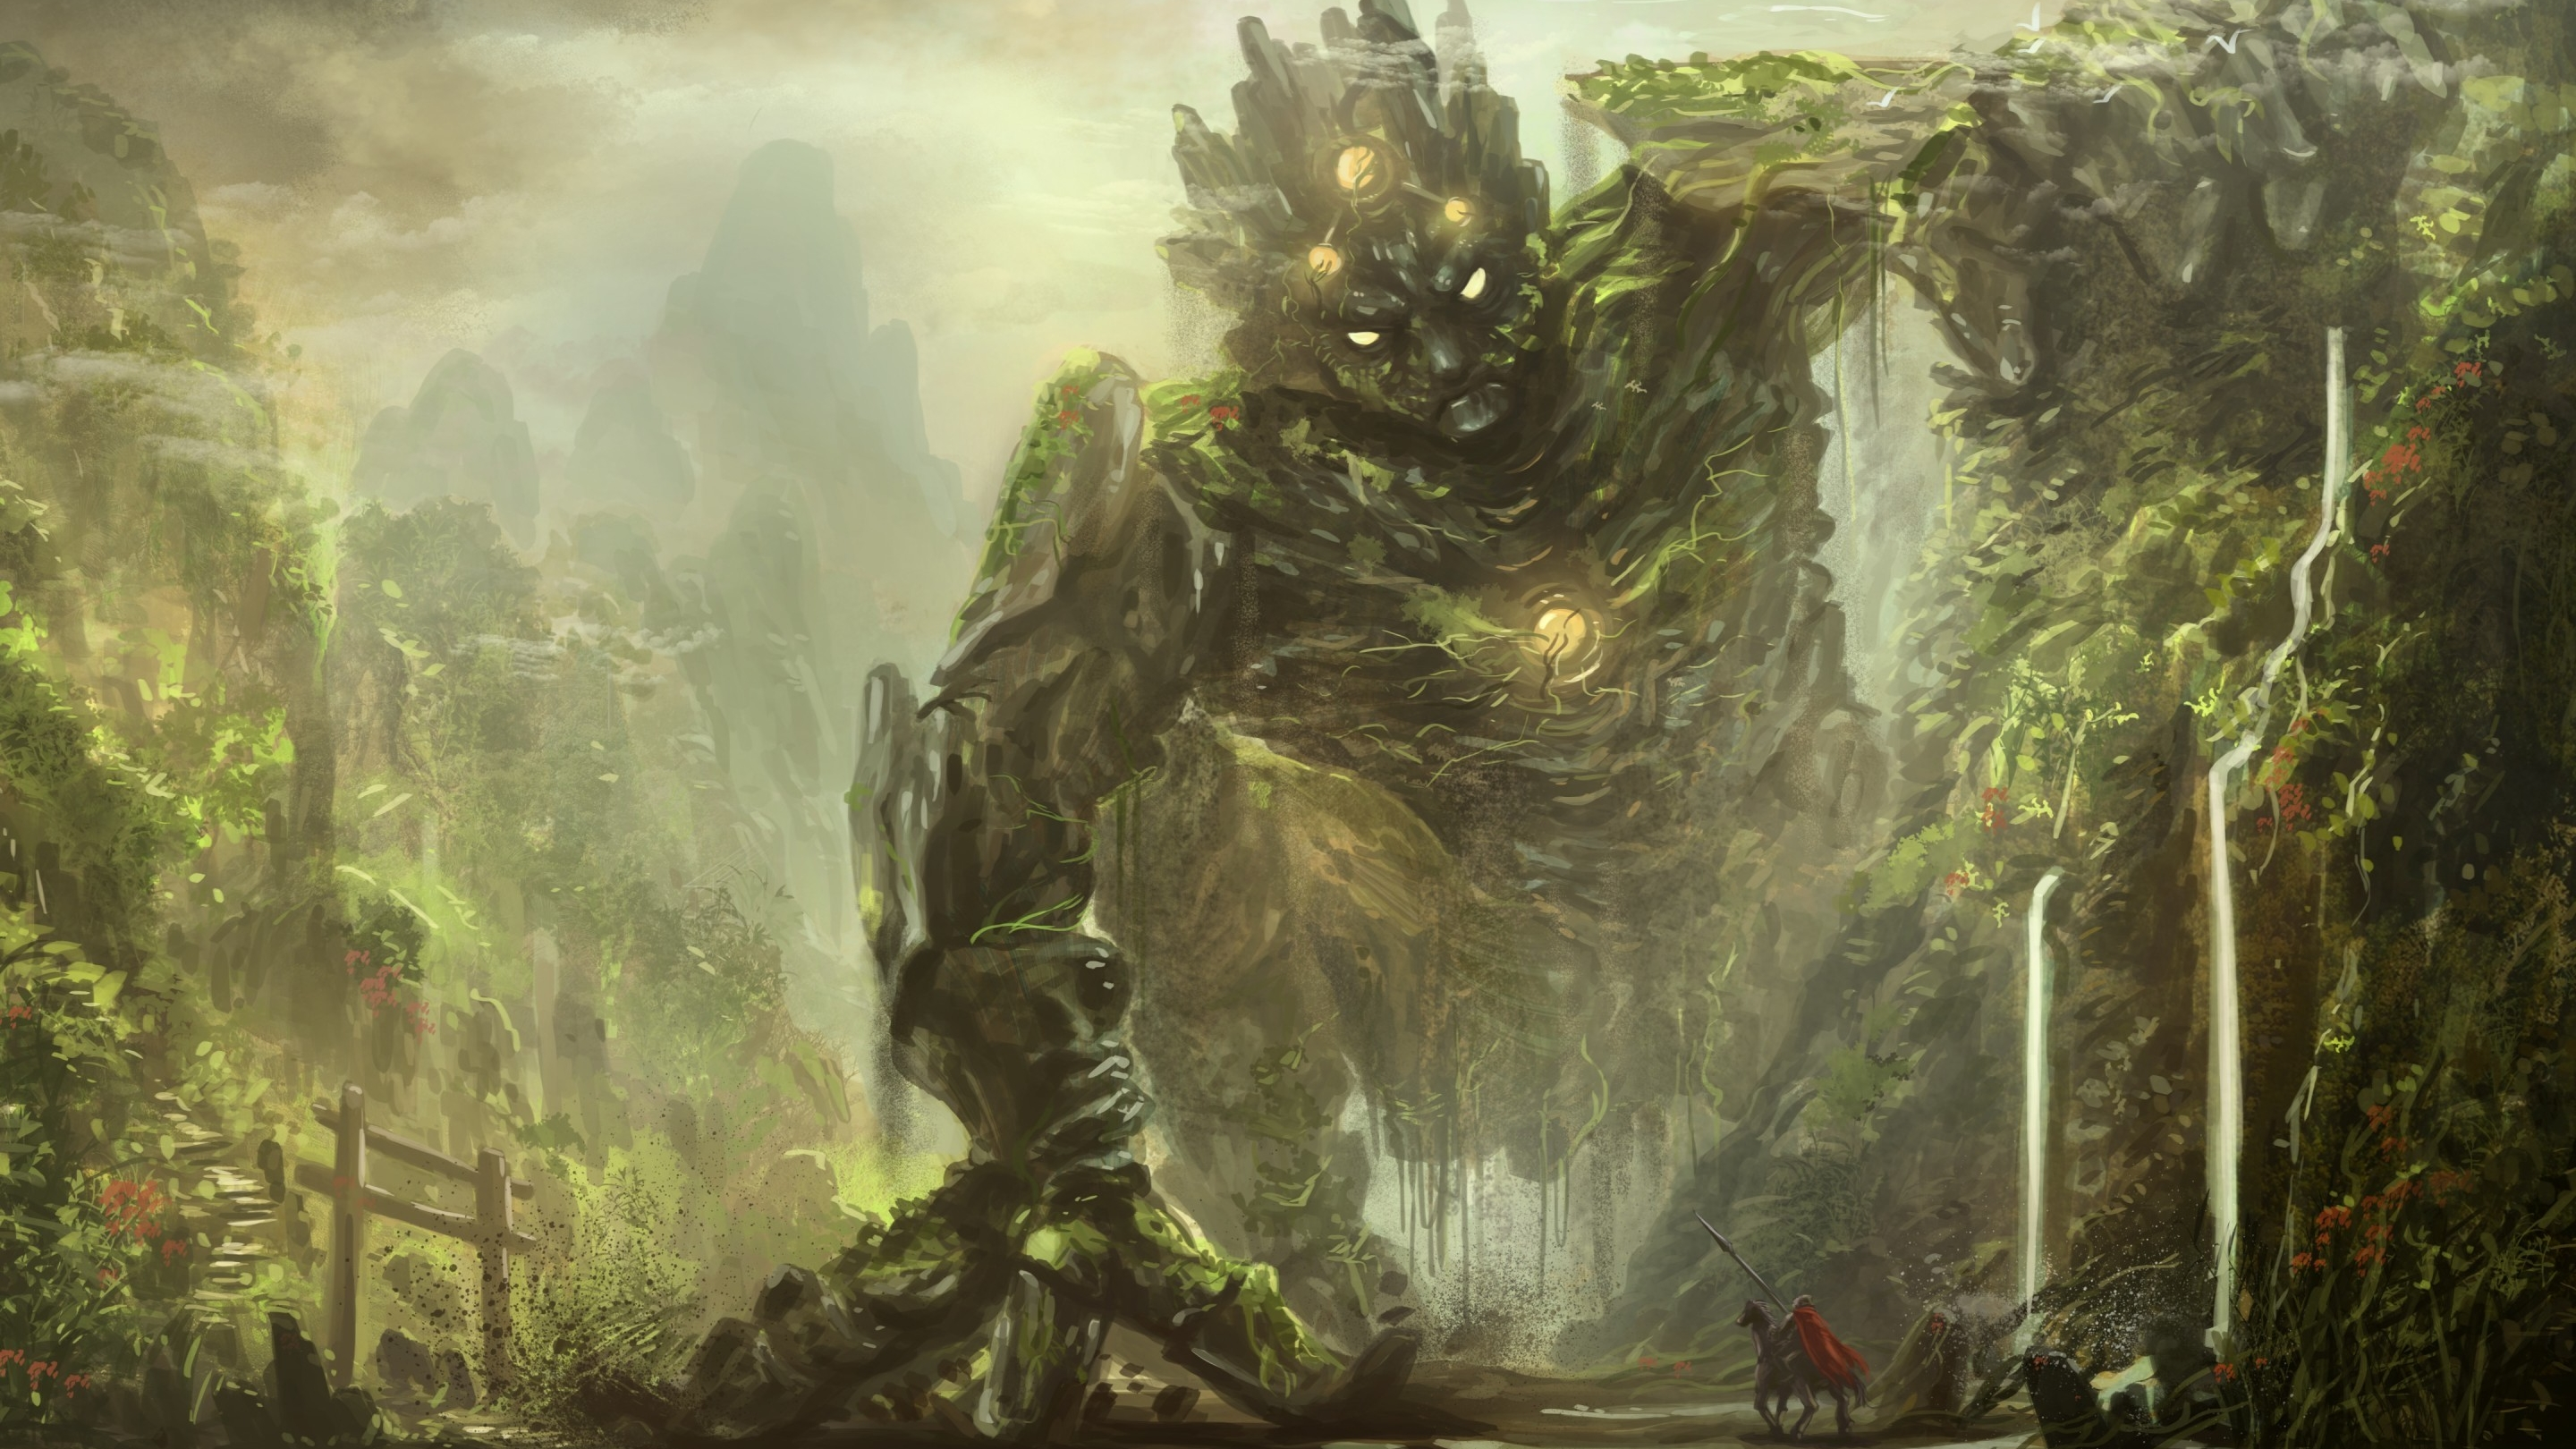 Gormath protector of the forest full hd wallpaper and - Fantasy wallpaper 3440x1440 ...